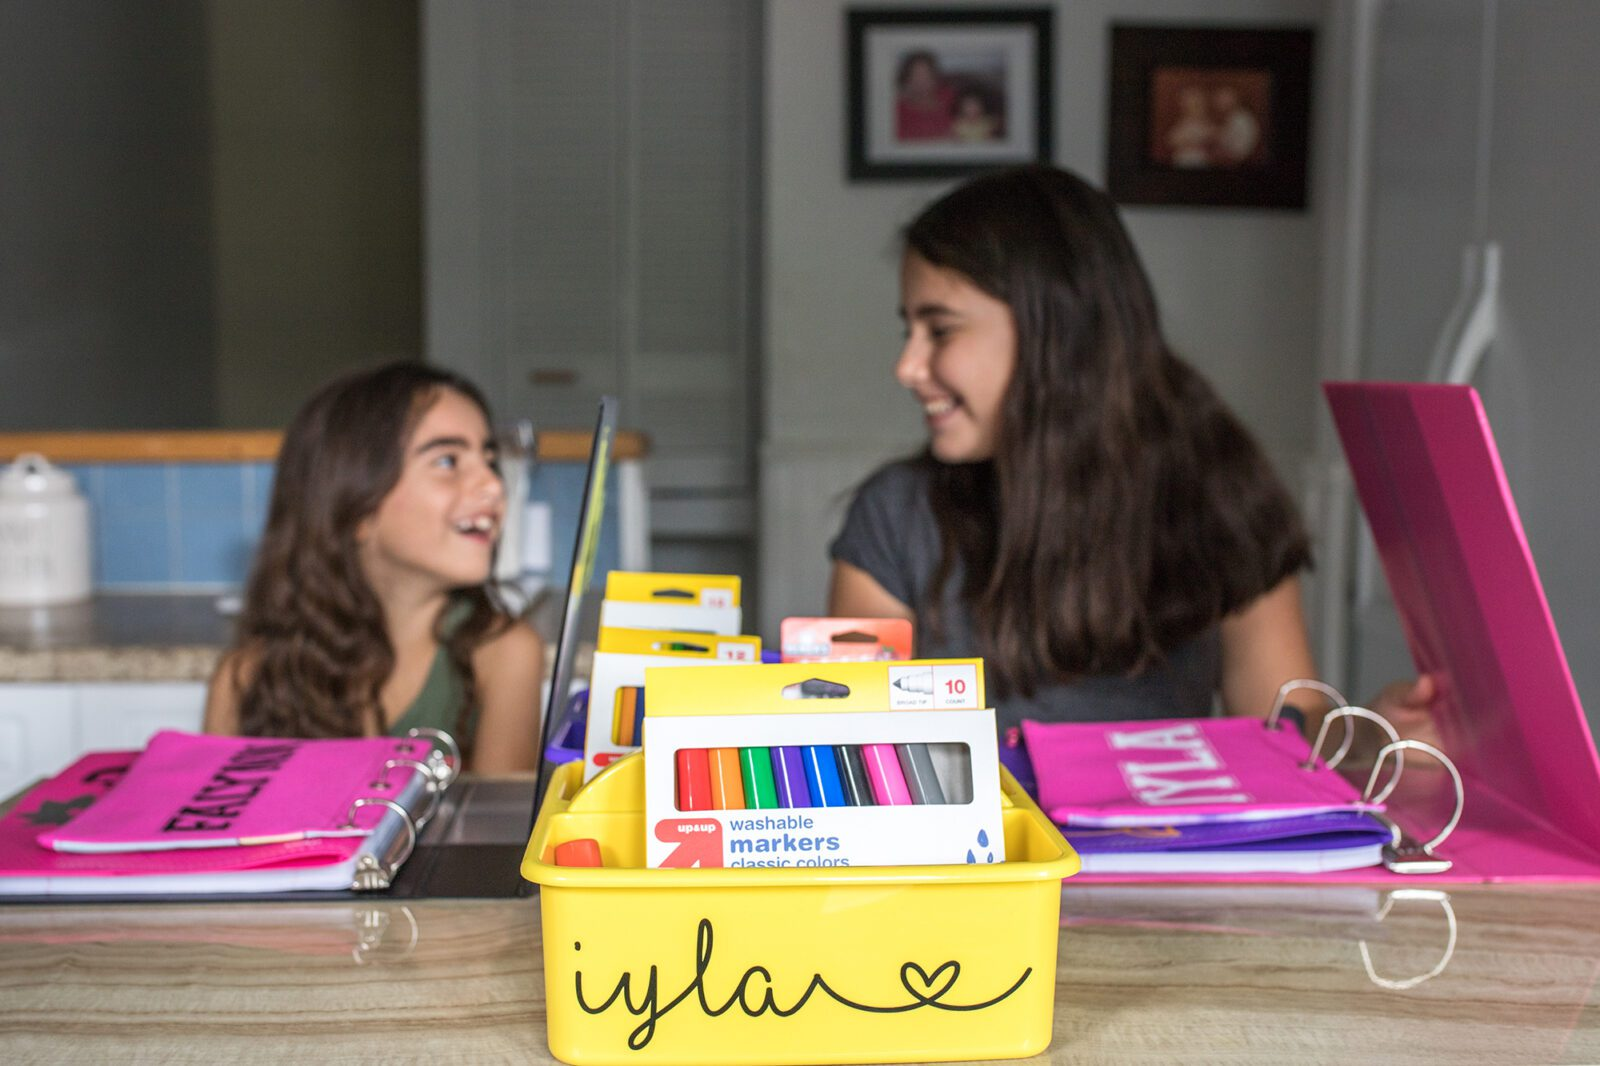 personalized storage bin with sisters smiling at each other in the background